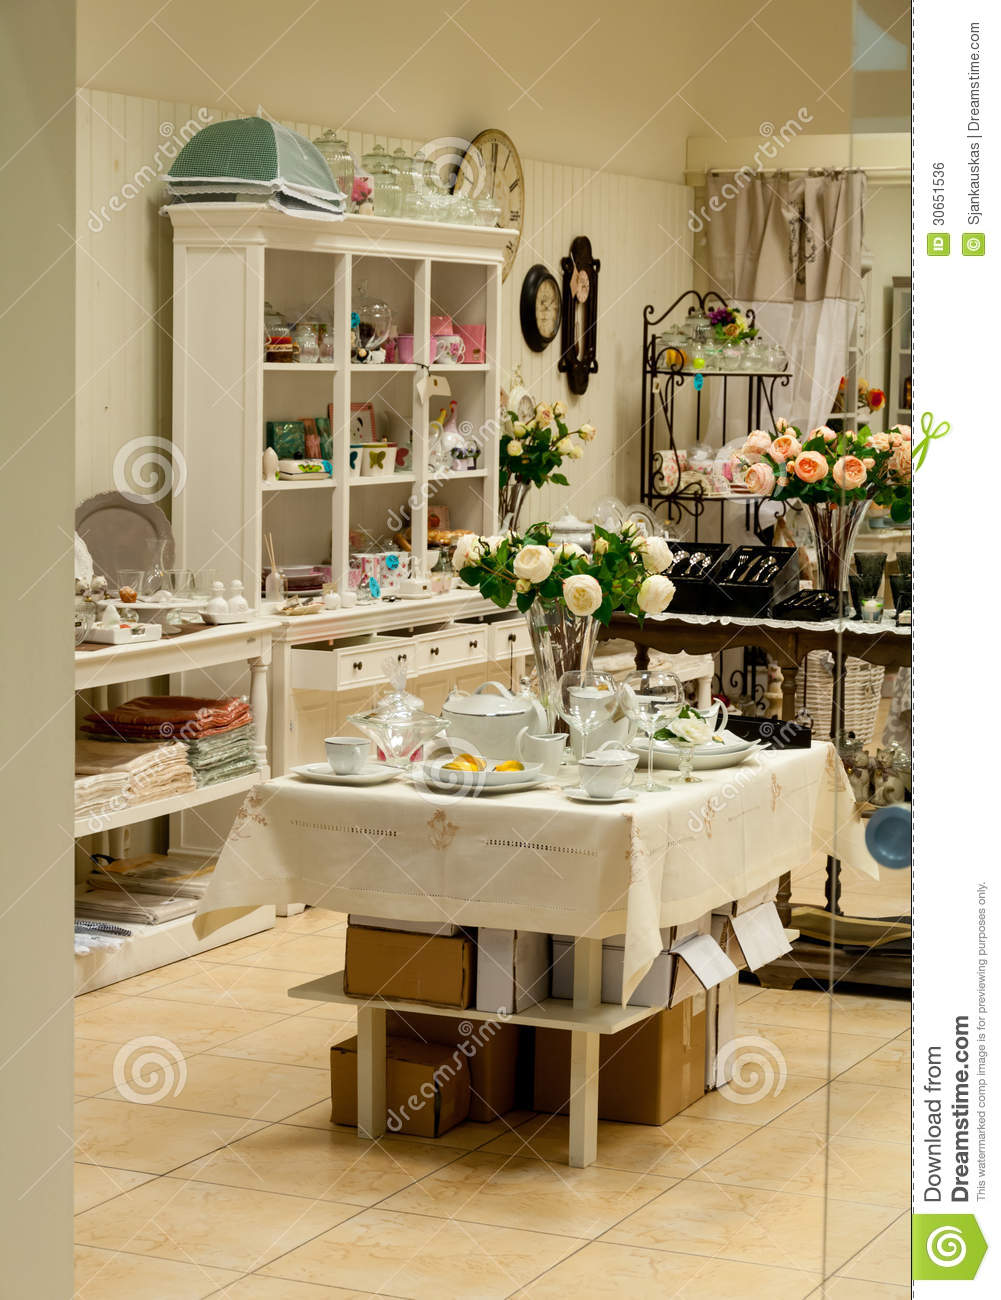 Home decor and dishes shop royalty free stock image for Internal home decoration